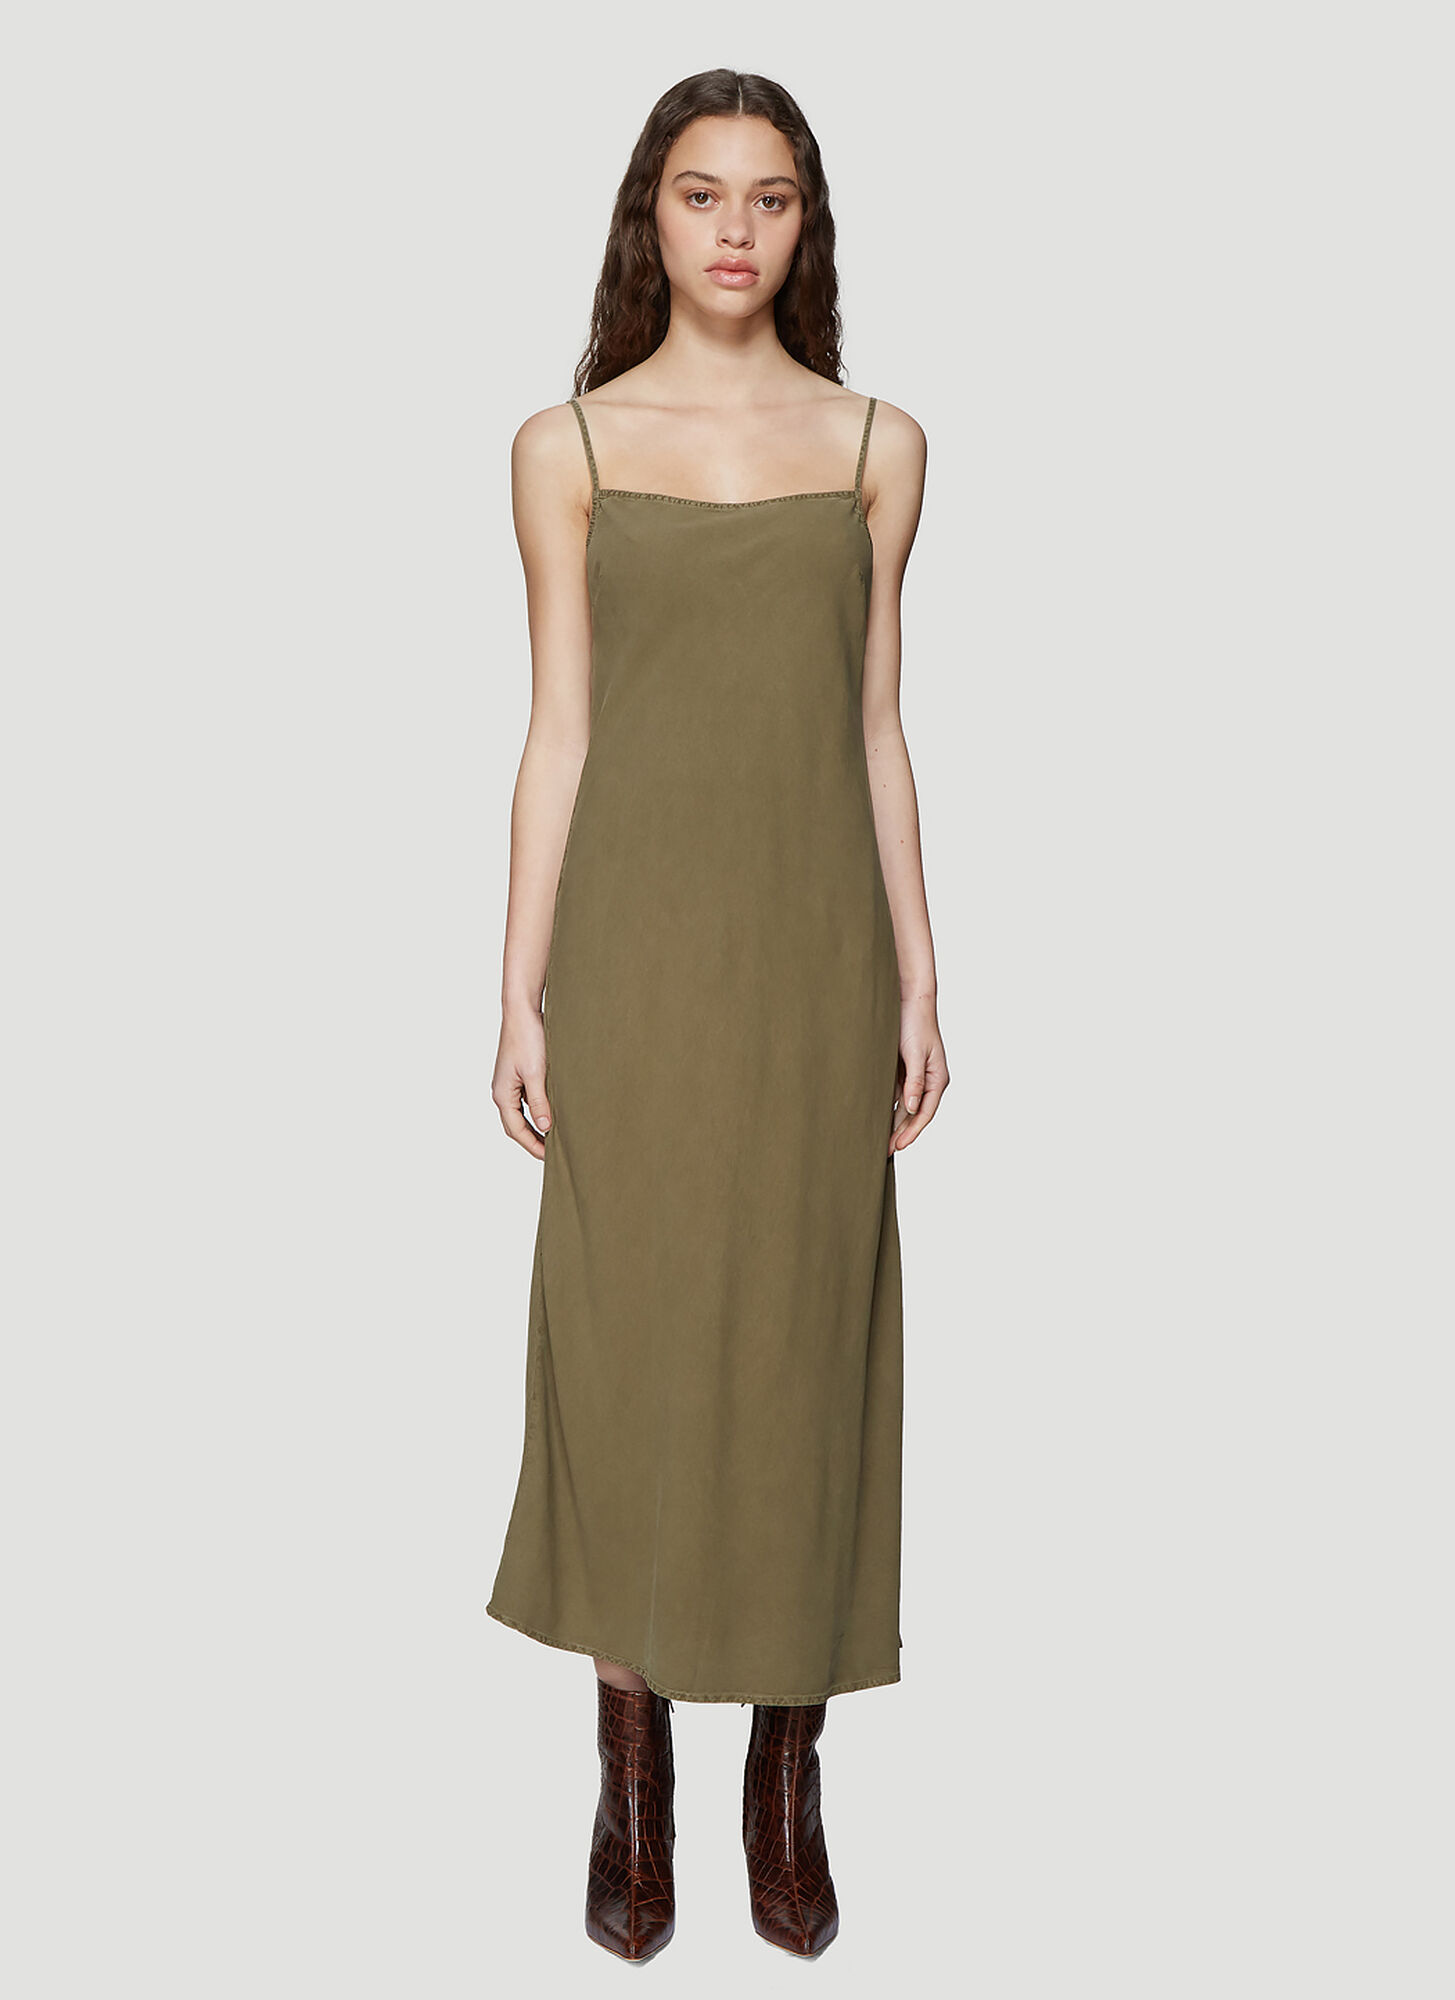 Our Legacy Bias Cut Slip Dress in Green